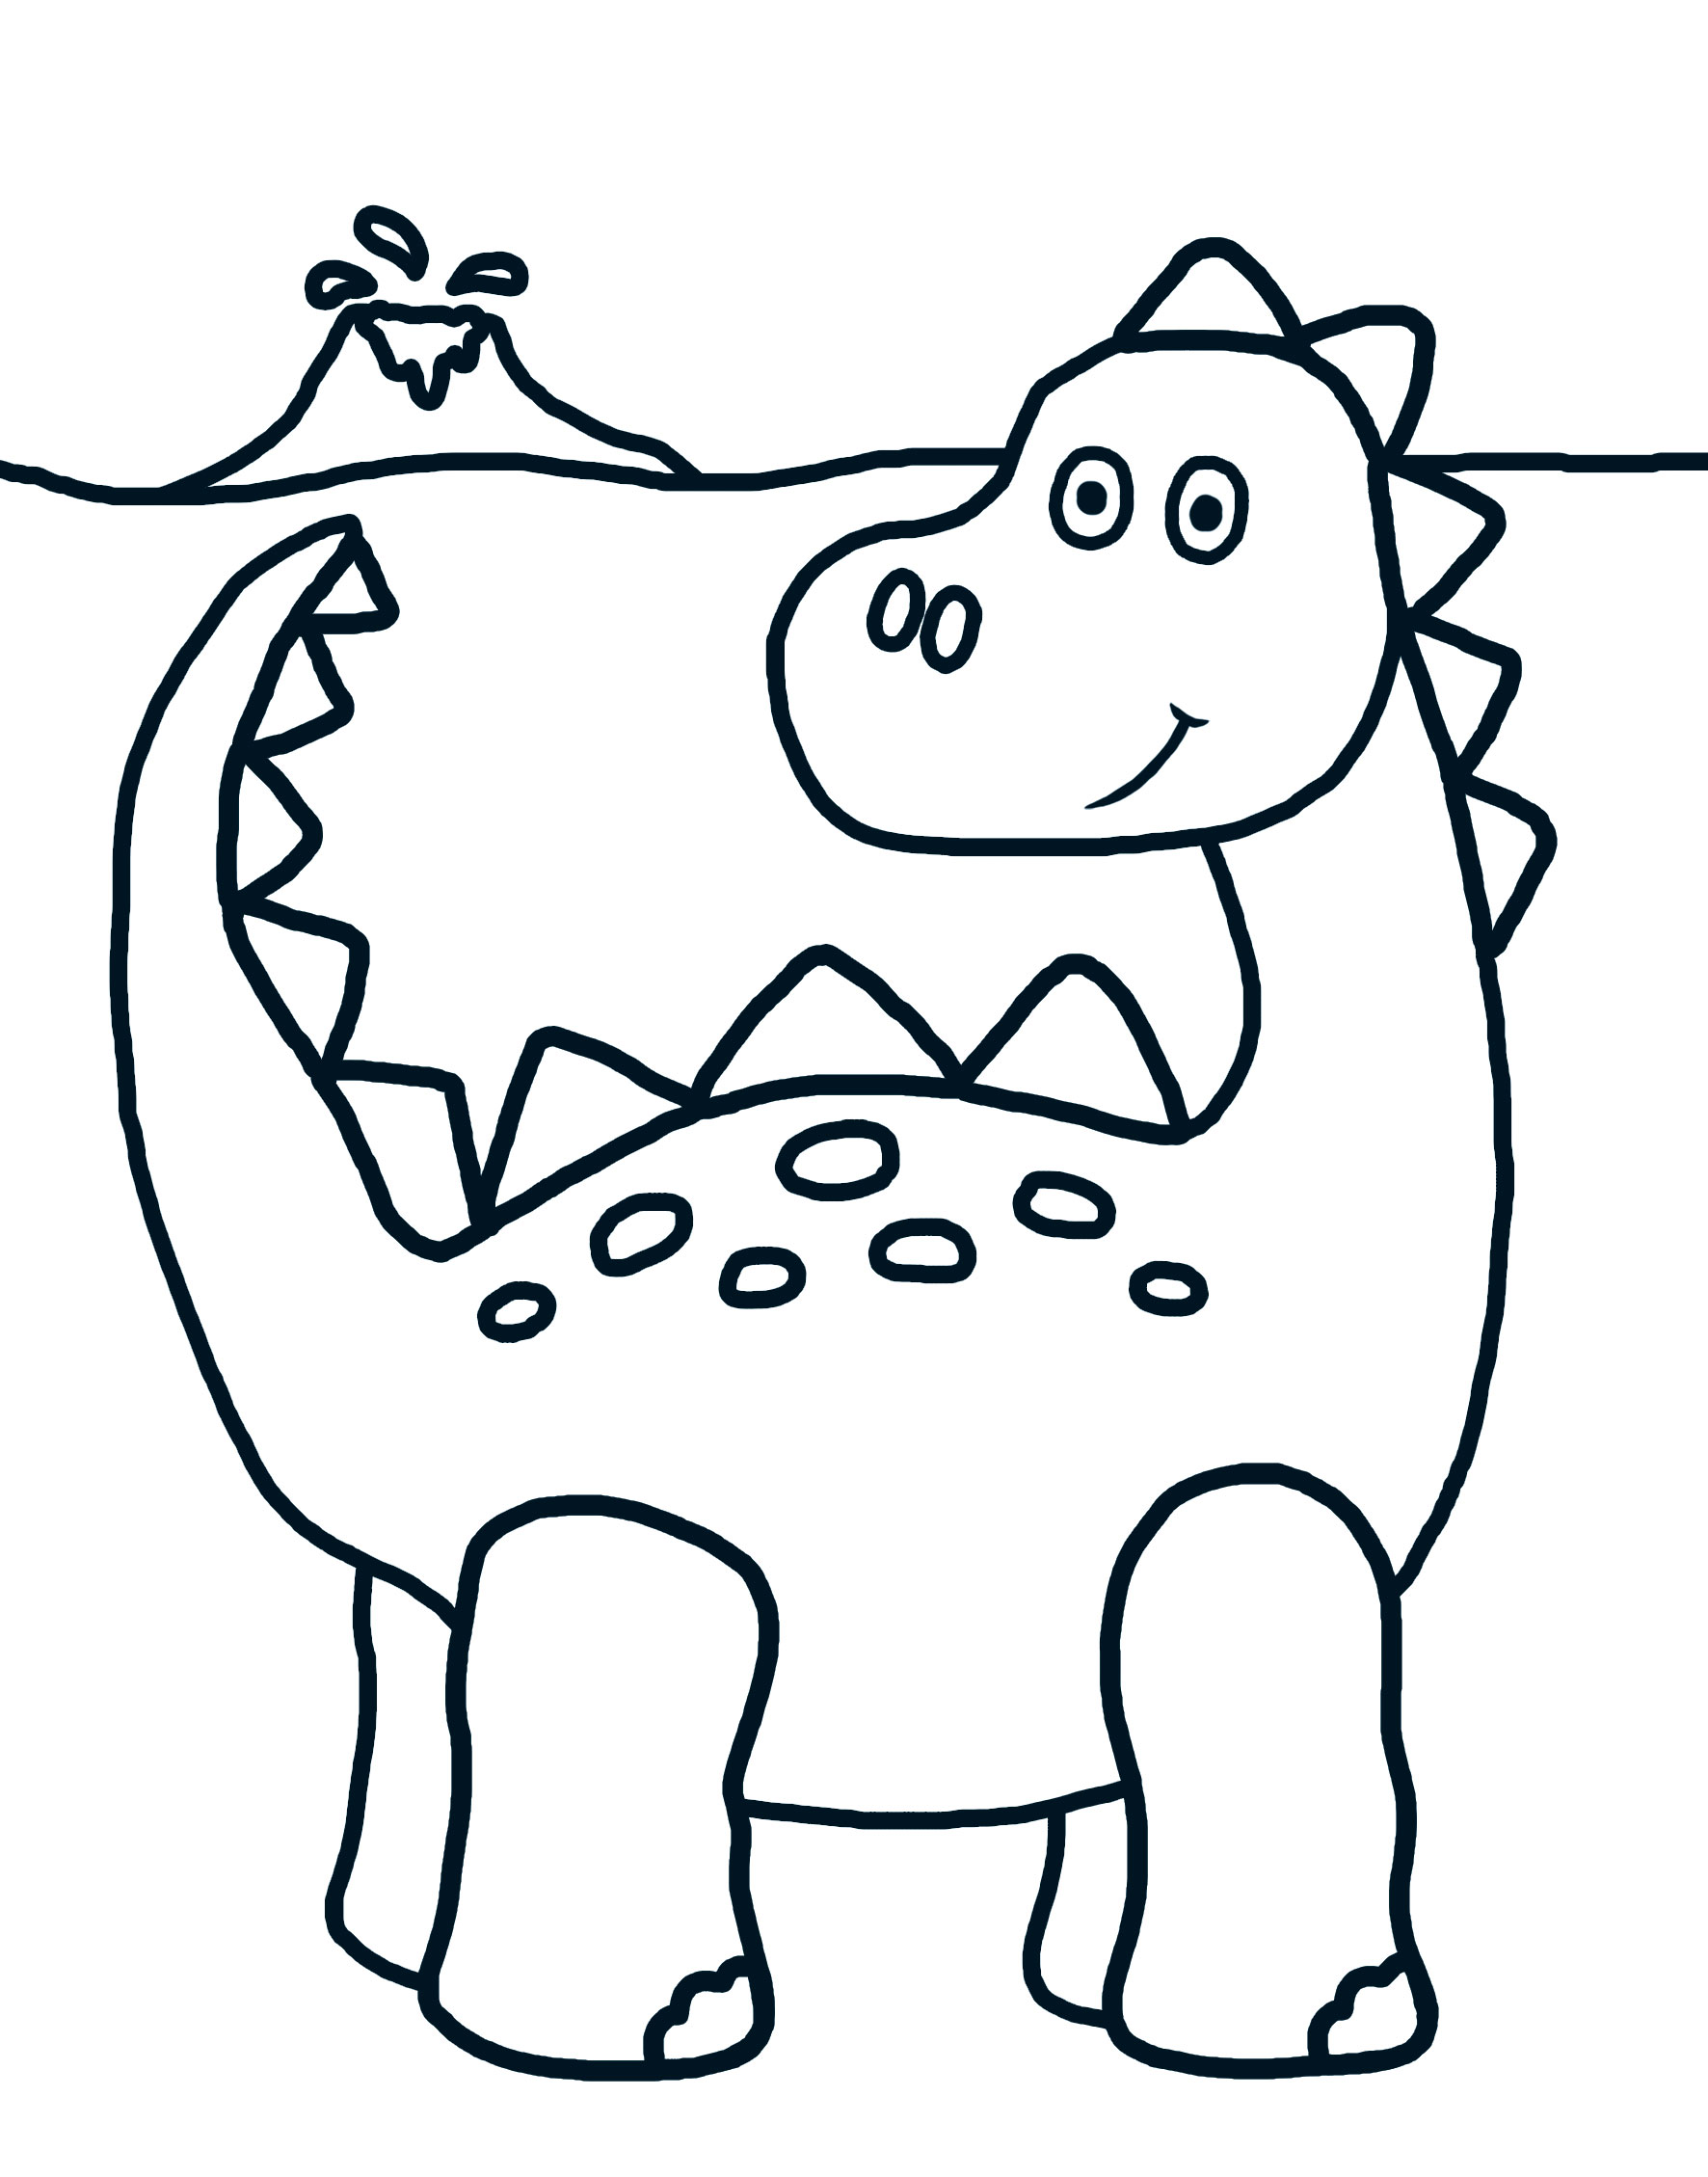 Sheets For Colouring Drawing at GetDrawingscom Free for personal